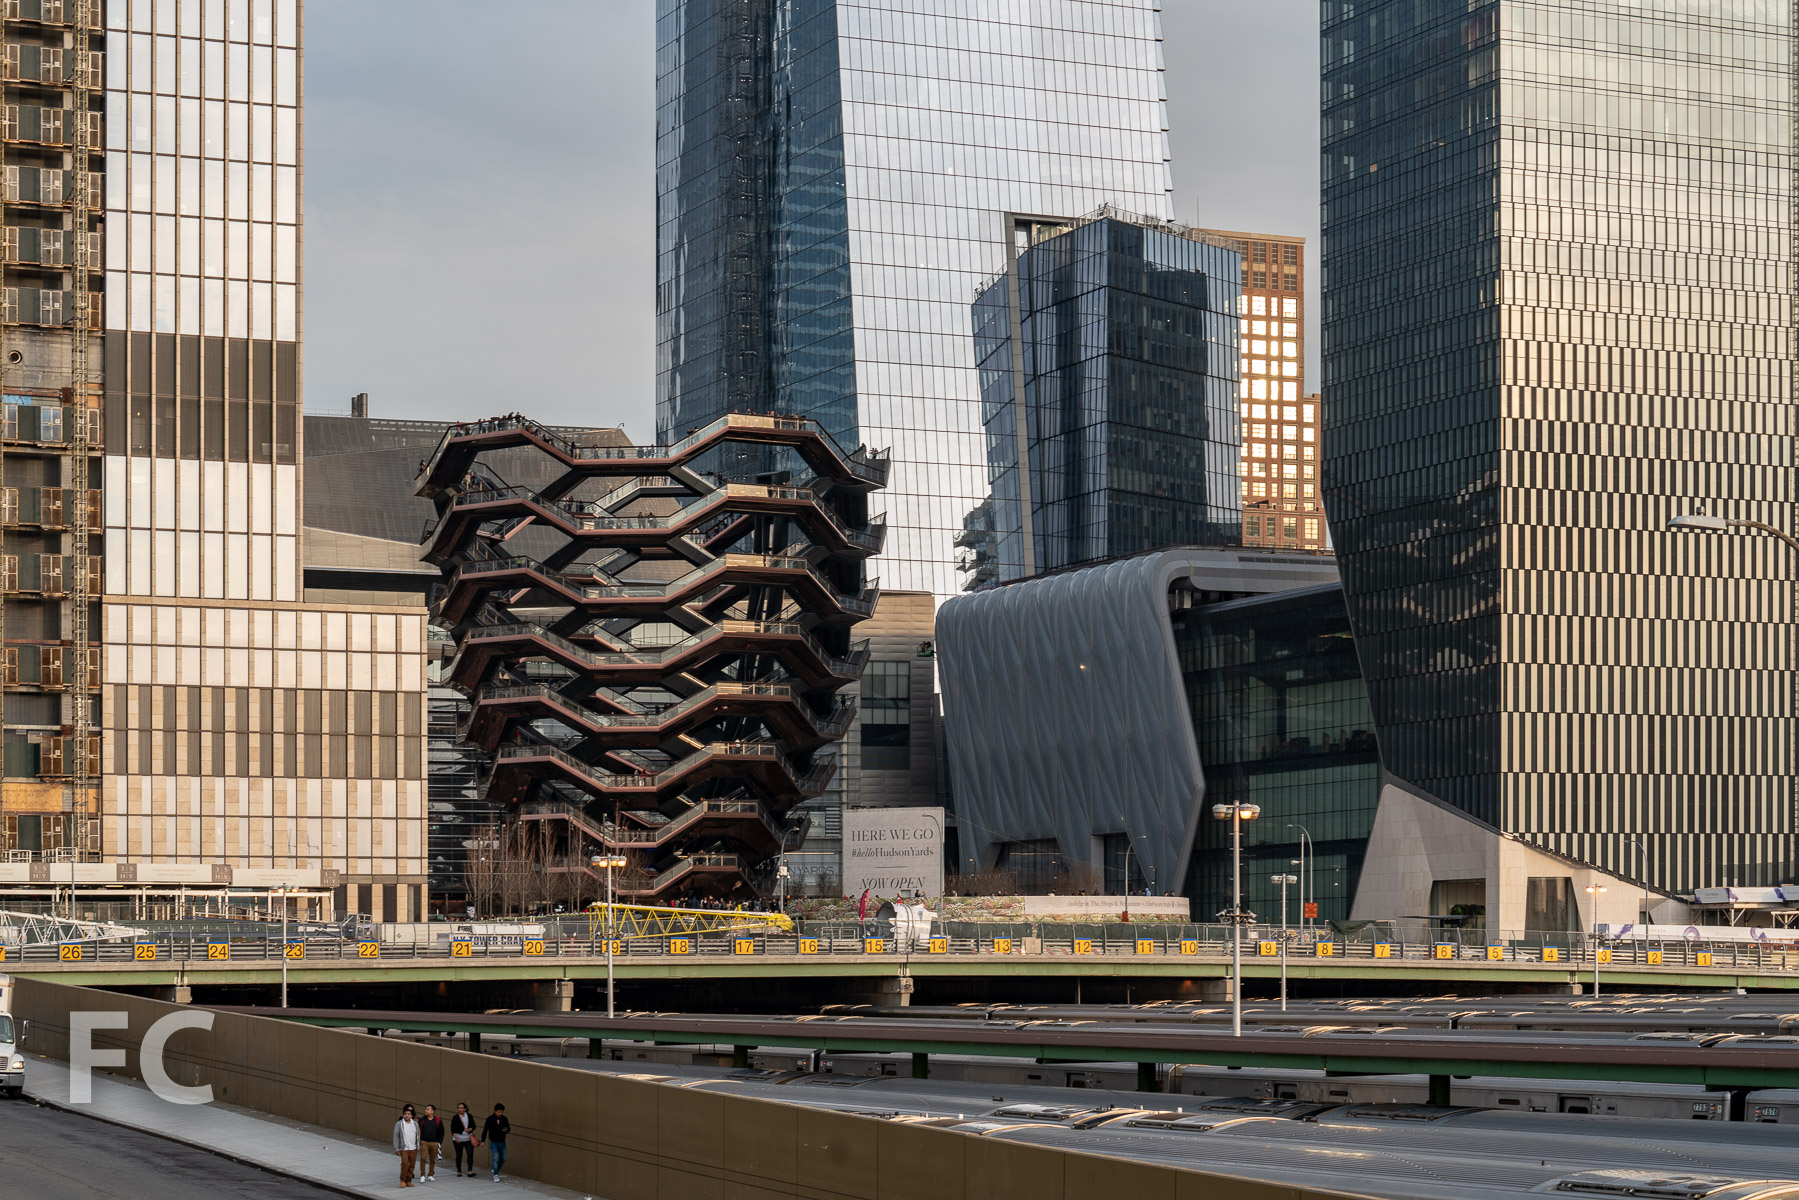 2019_03_30-The Shed at Hudson Yards-DSC09496.jpg